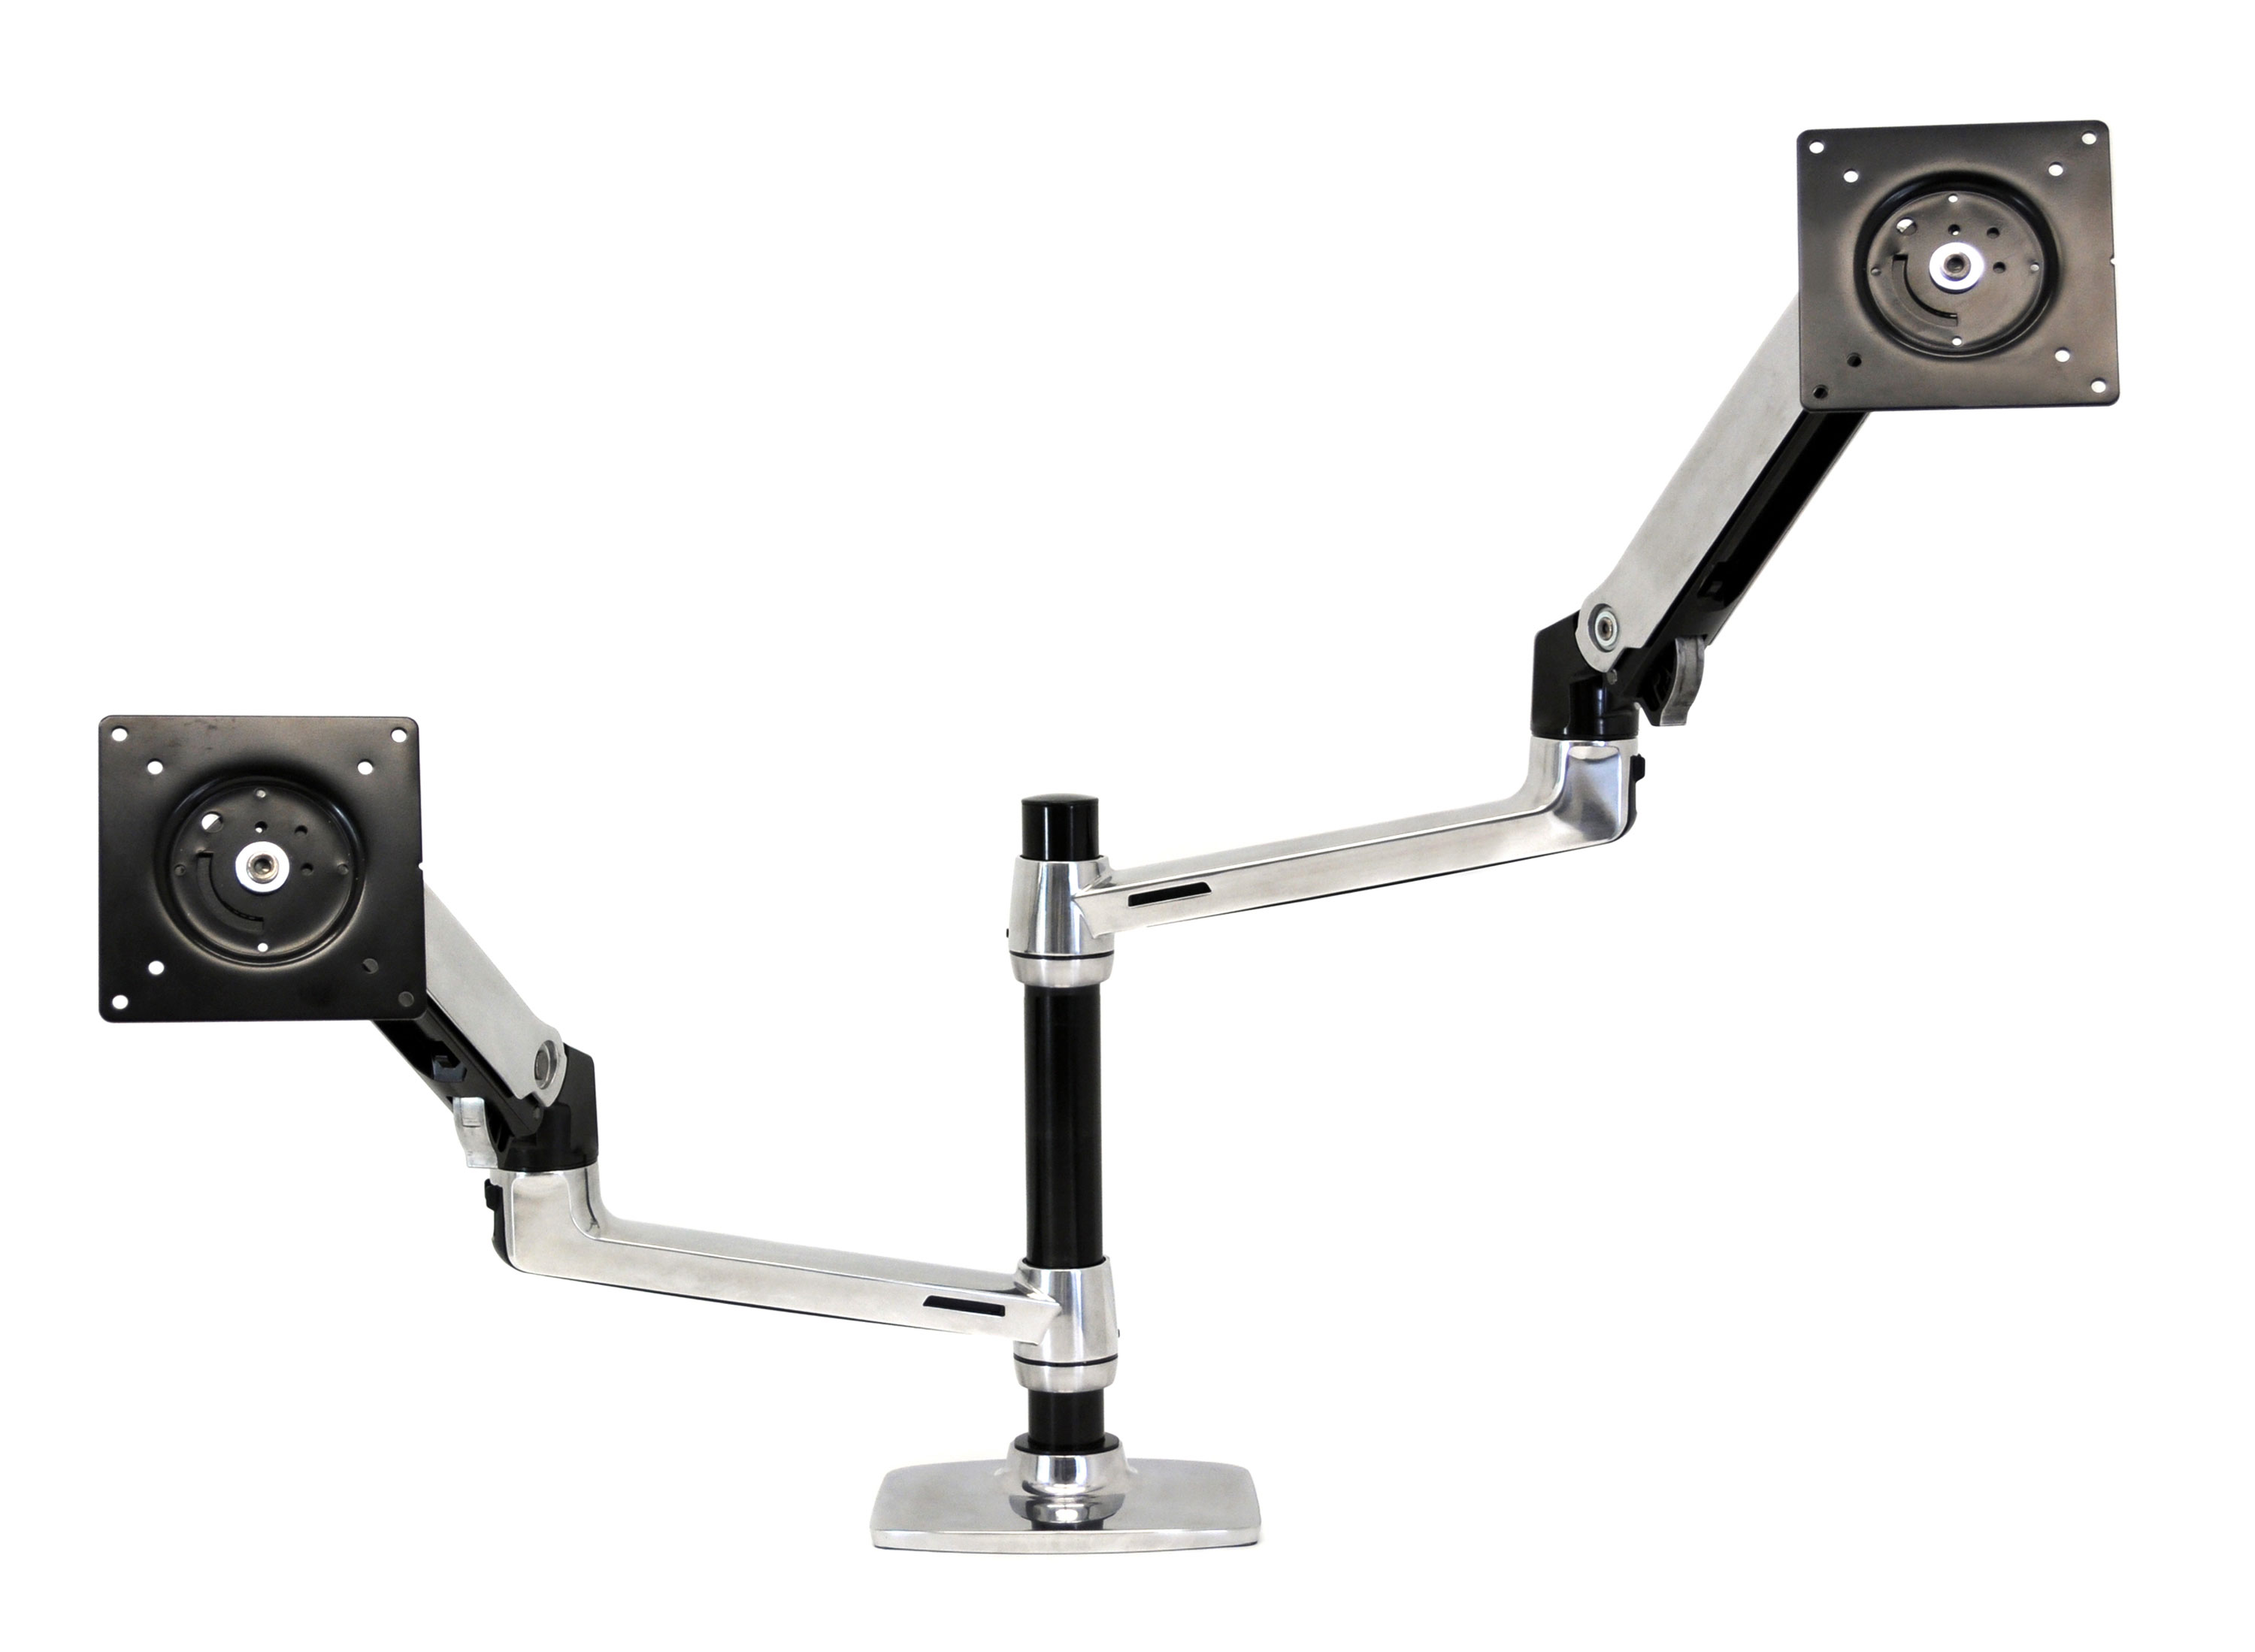 Ergotron LX Dual Stacking Arm - no monitors